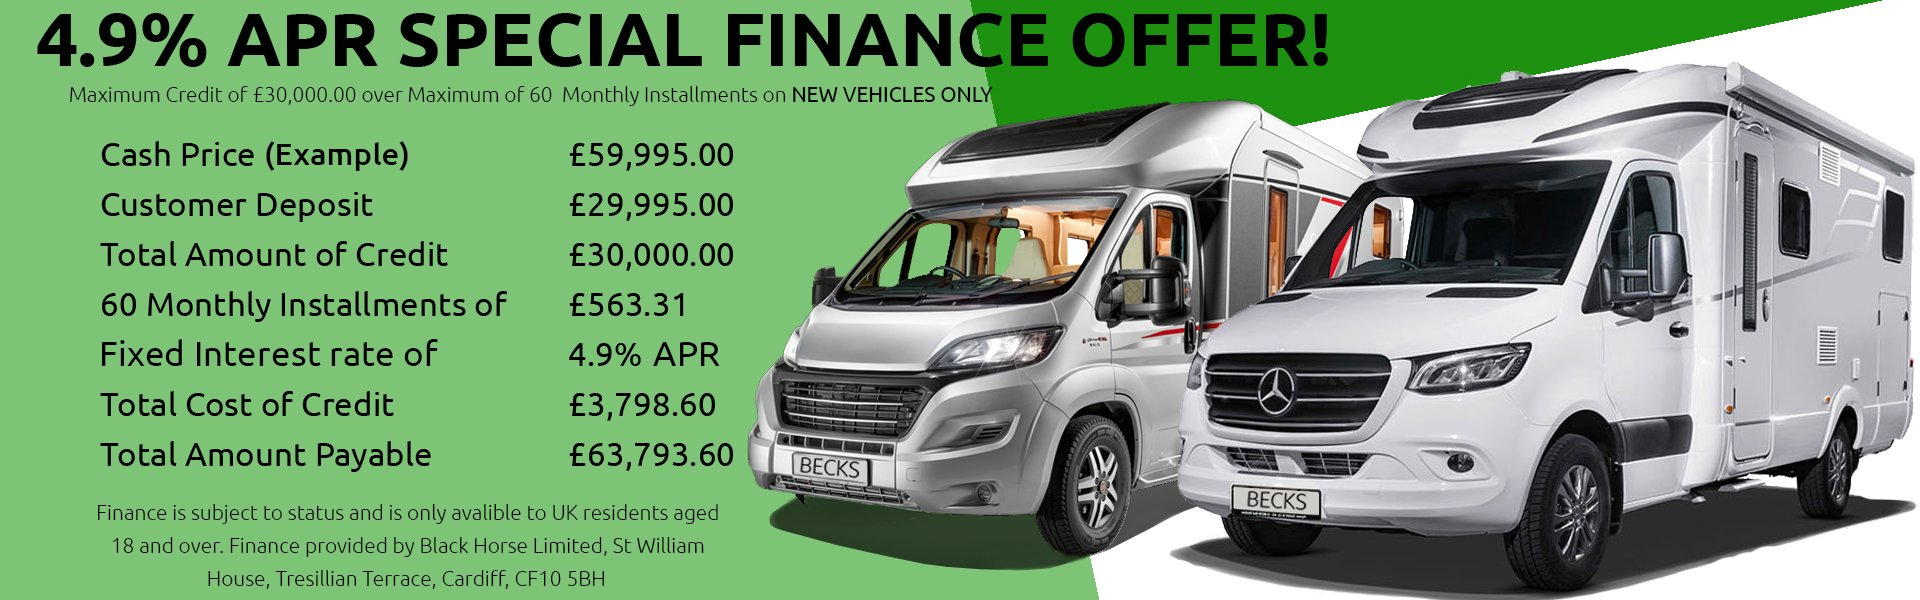 Norfolks finest selection of new & used Motorhomes for sale